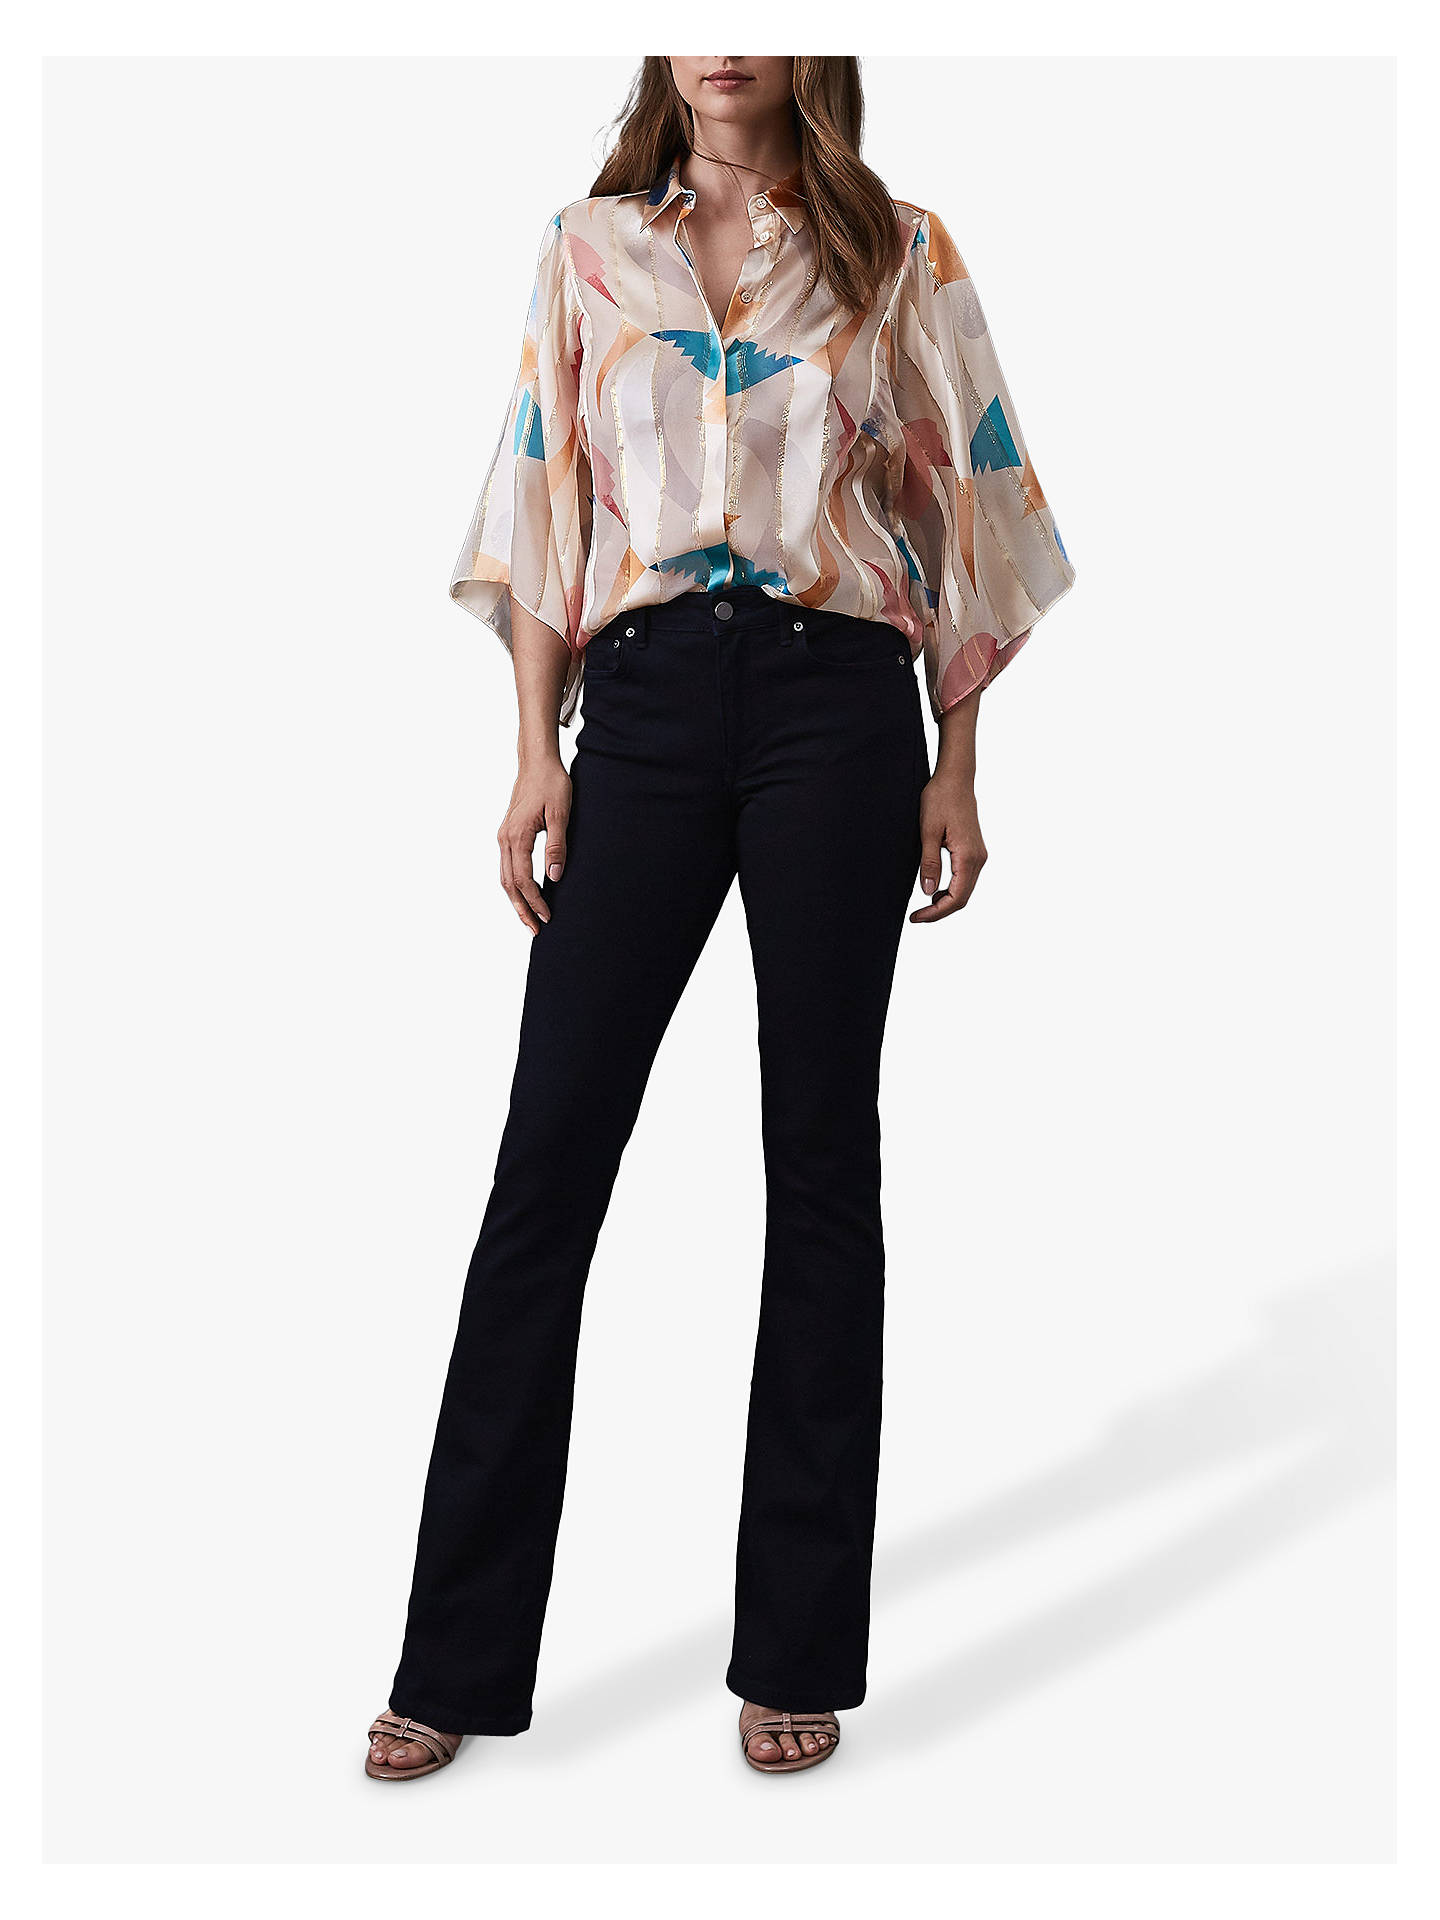 BuyReiss Anabelle Jeans, Ink, 24 Online at johnlewis.com